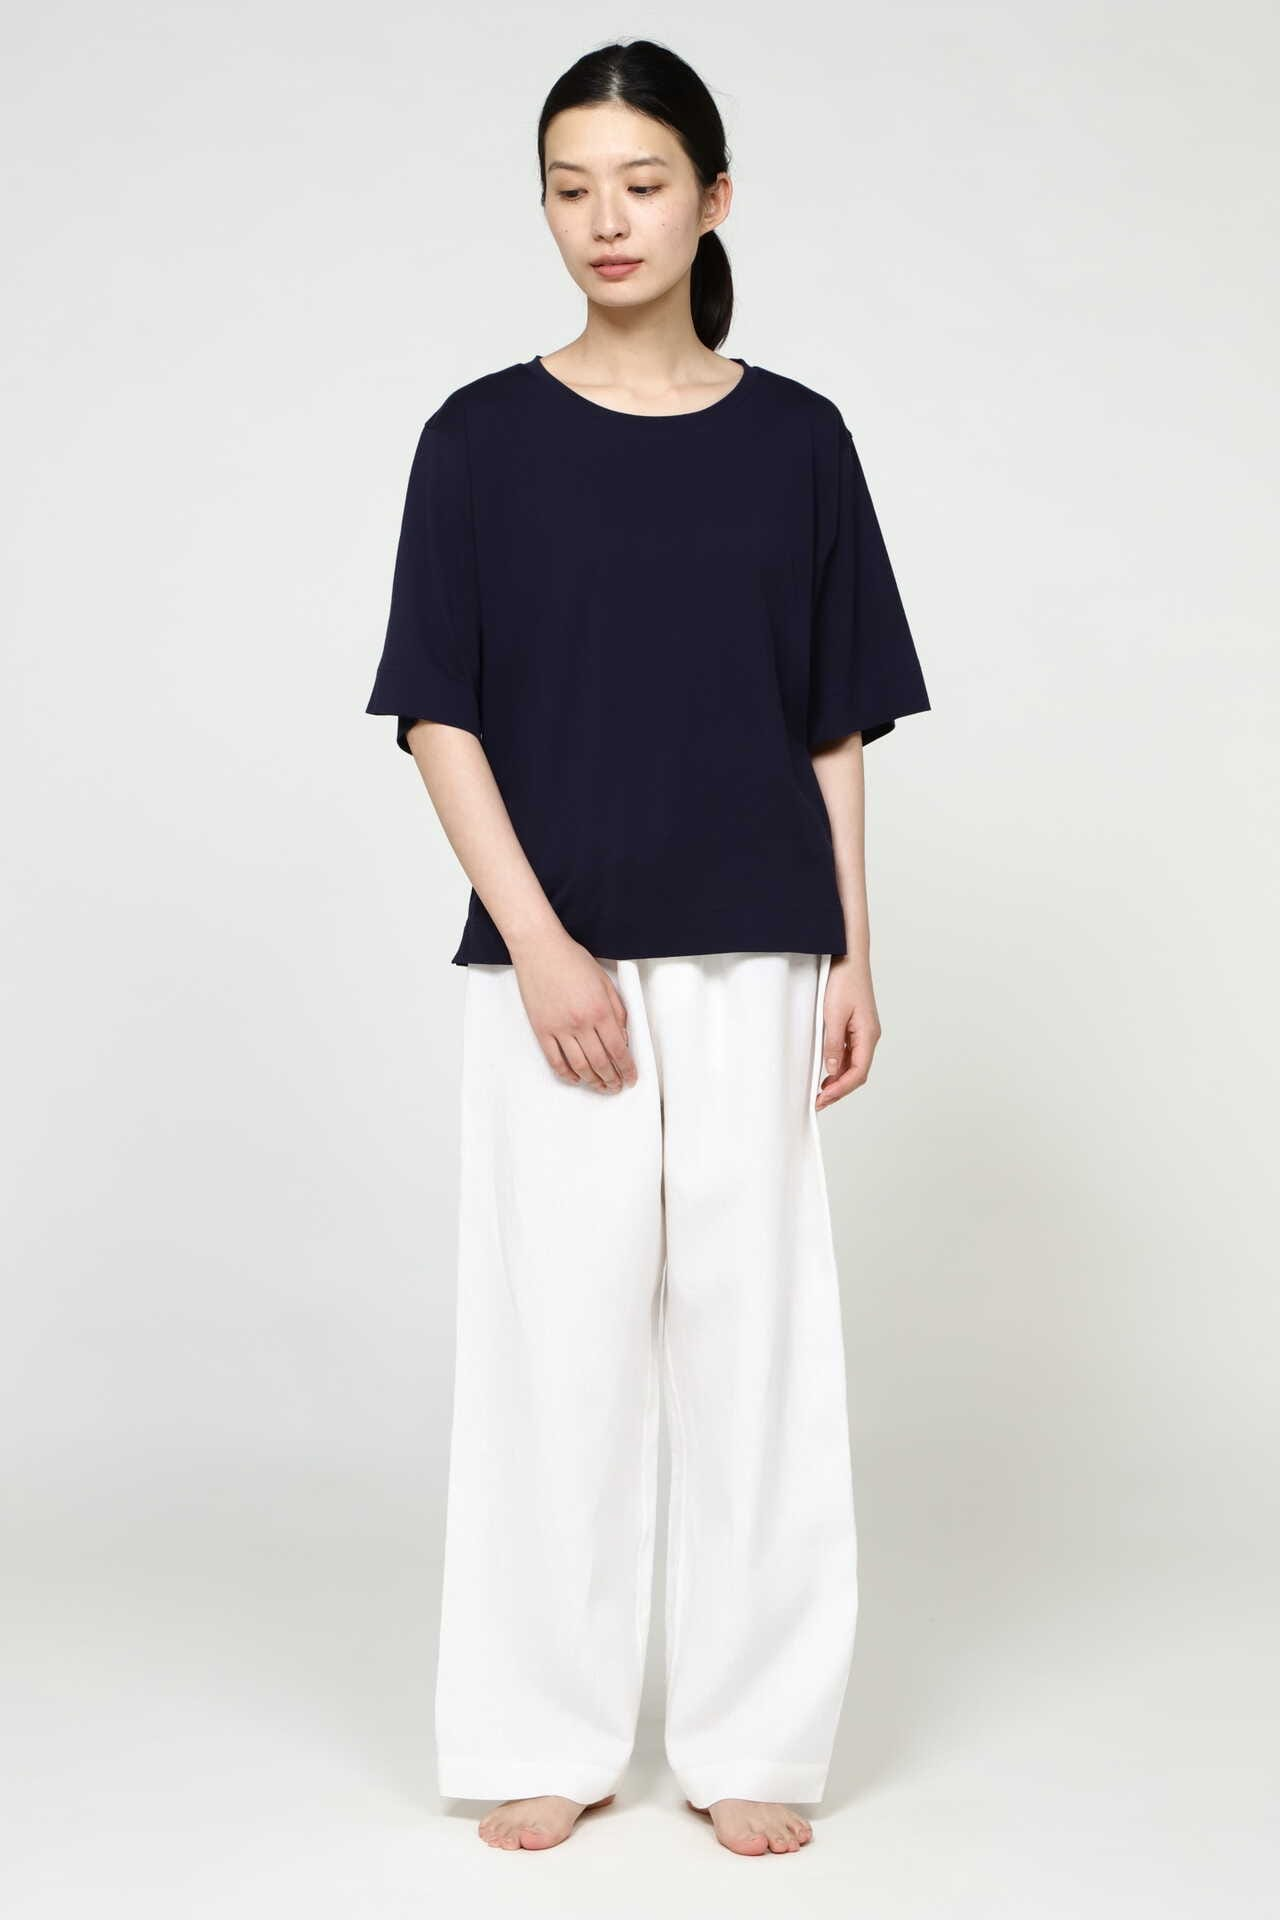 RELAXED COTTON JERSEY8